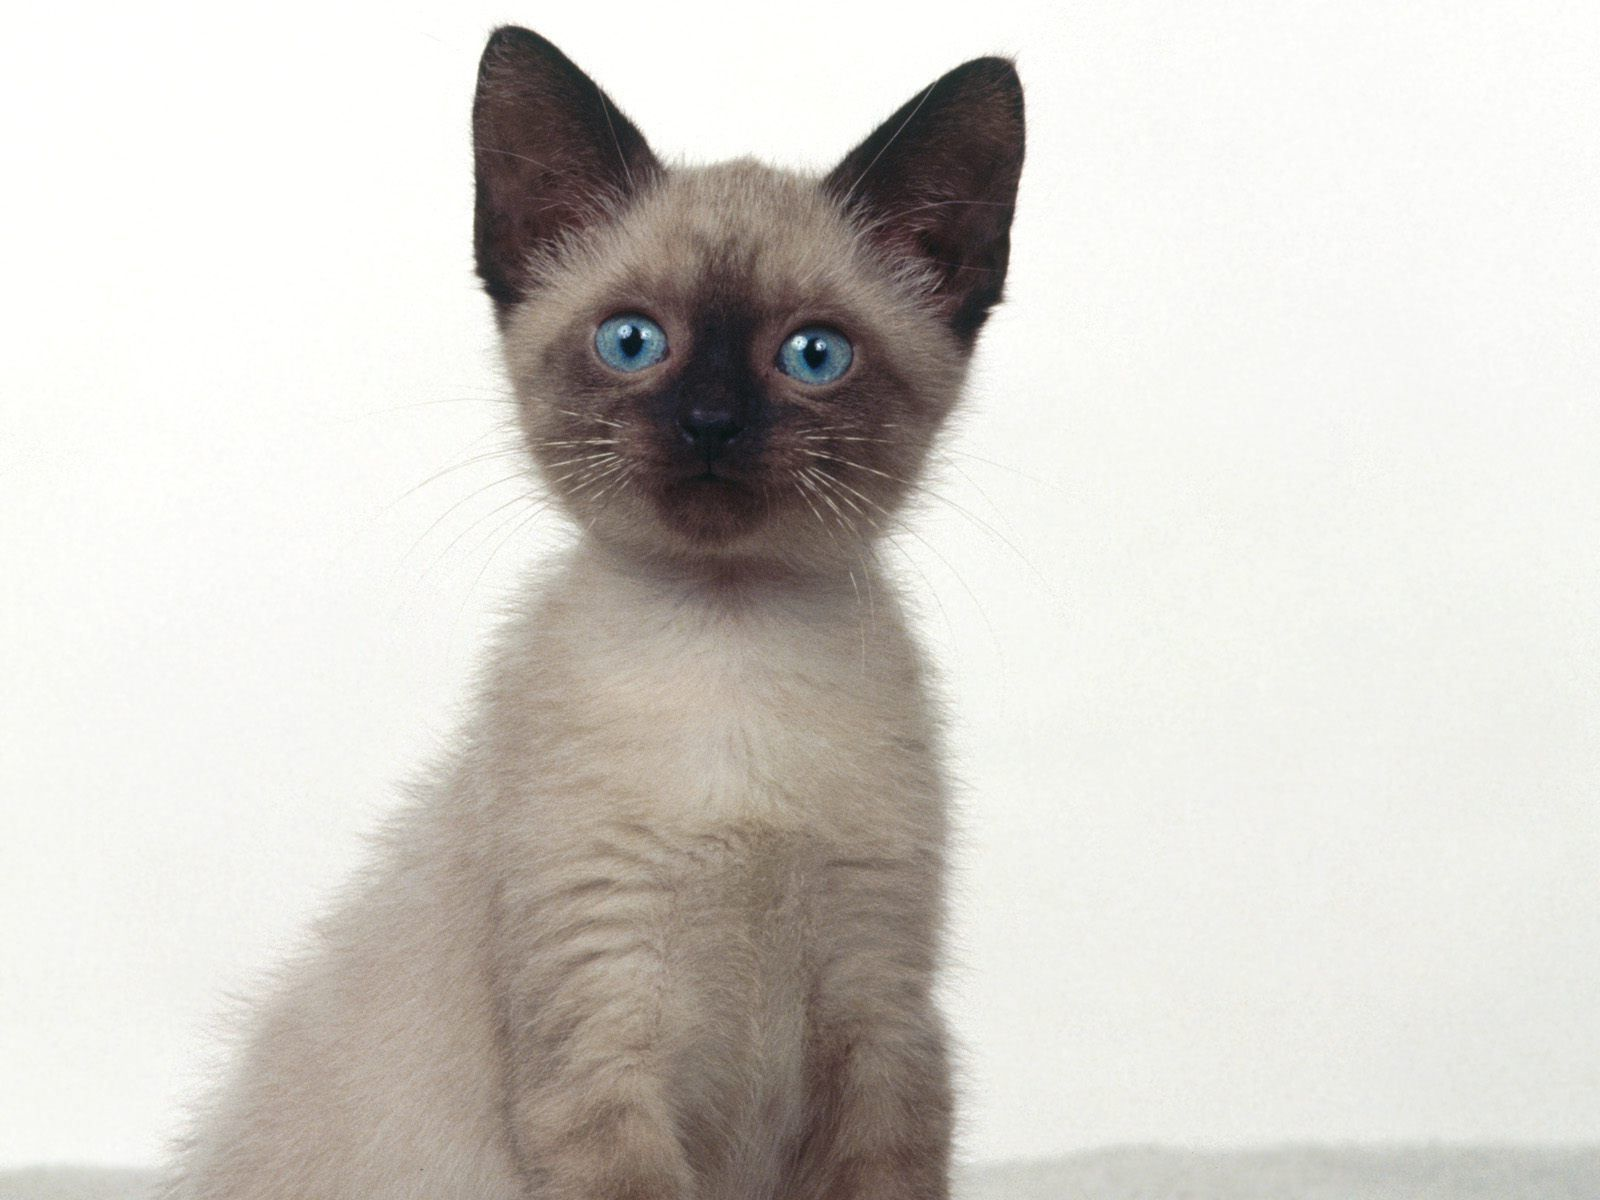 siamese Siamese kittens, Siamese cats, Beautiful cat breeds